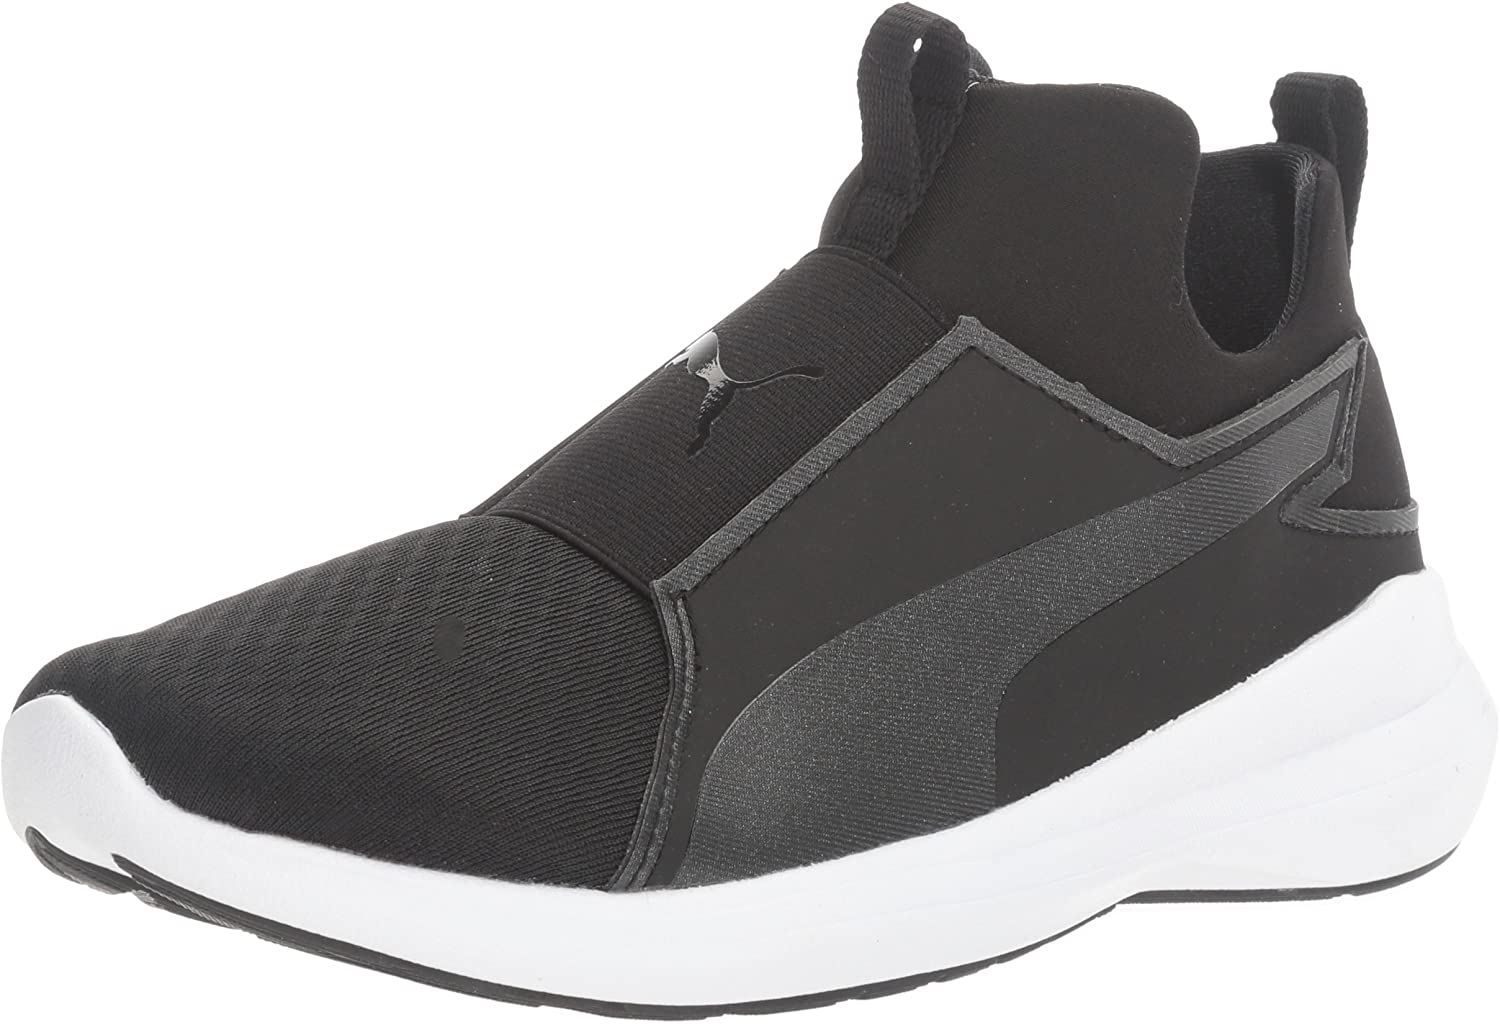 PUMA Women's Rebel Mid Cross Trainers